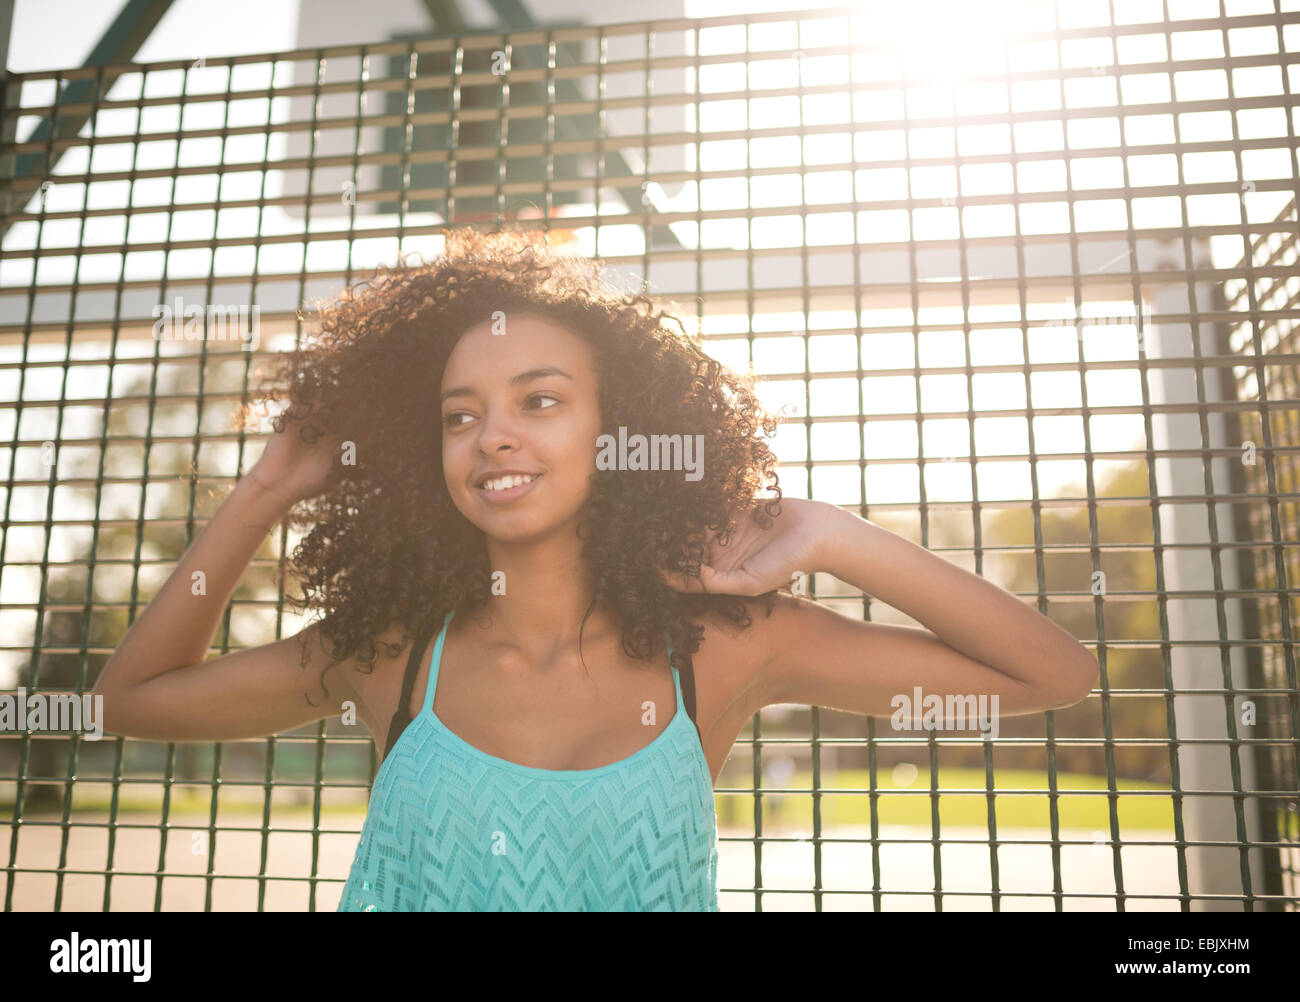 Portrait of young female basketball player with hands in hair - Stock Image